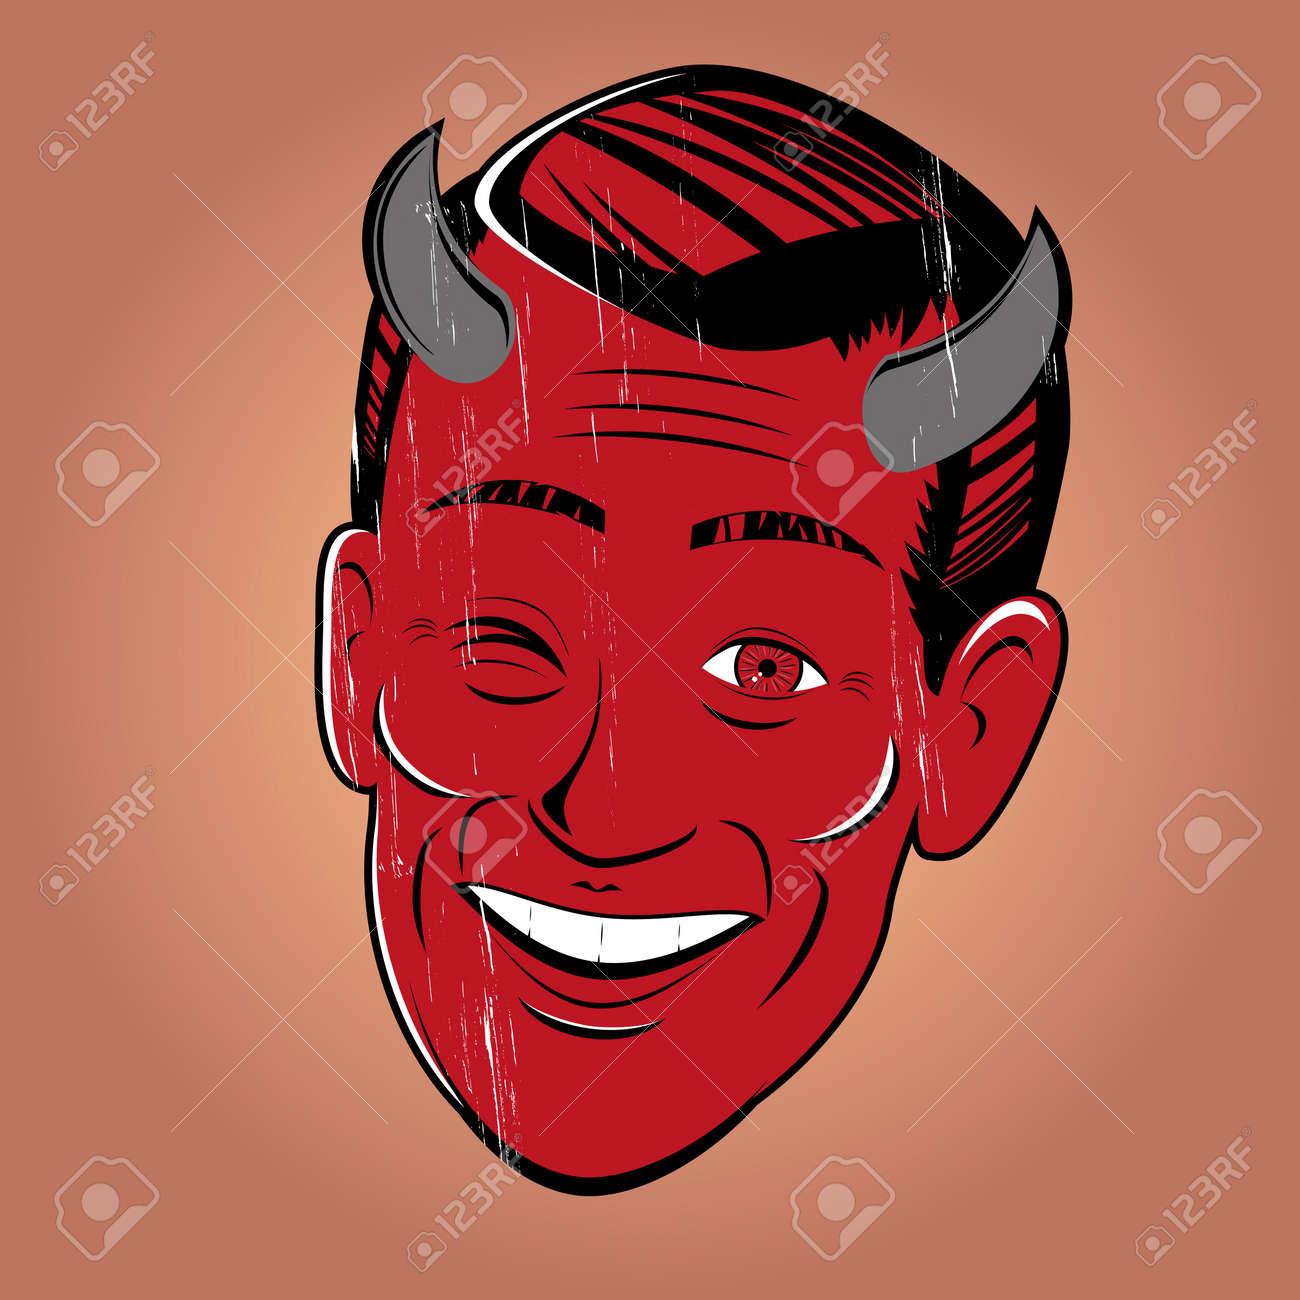 Devil Cartoon: Winking Cartoon Devil Illustration How To Draw A Demon Face  Easy Drawings For